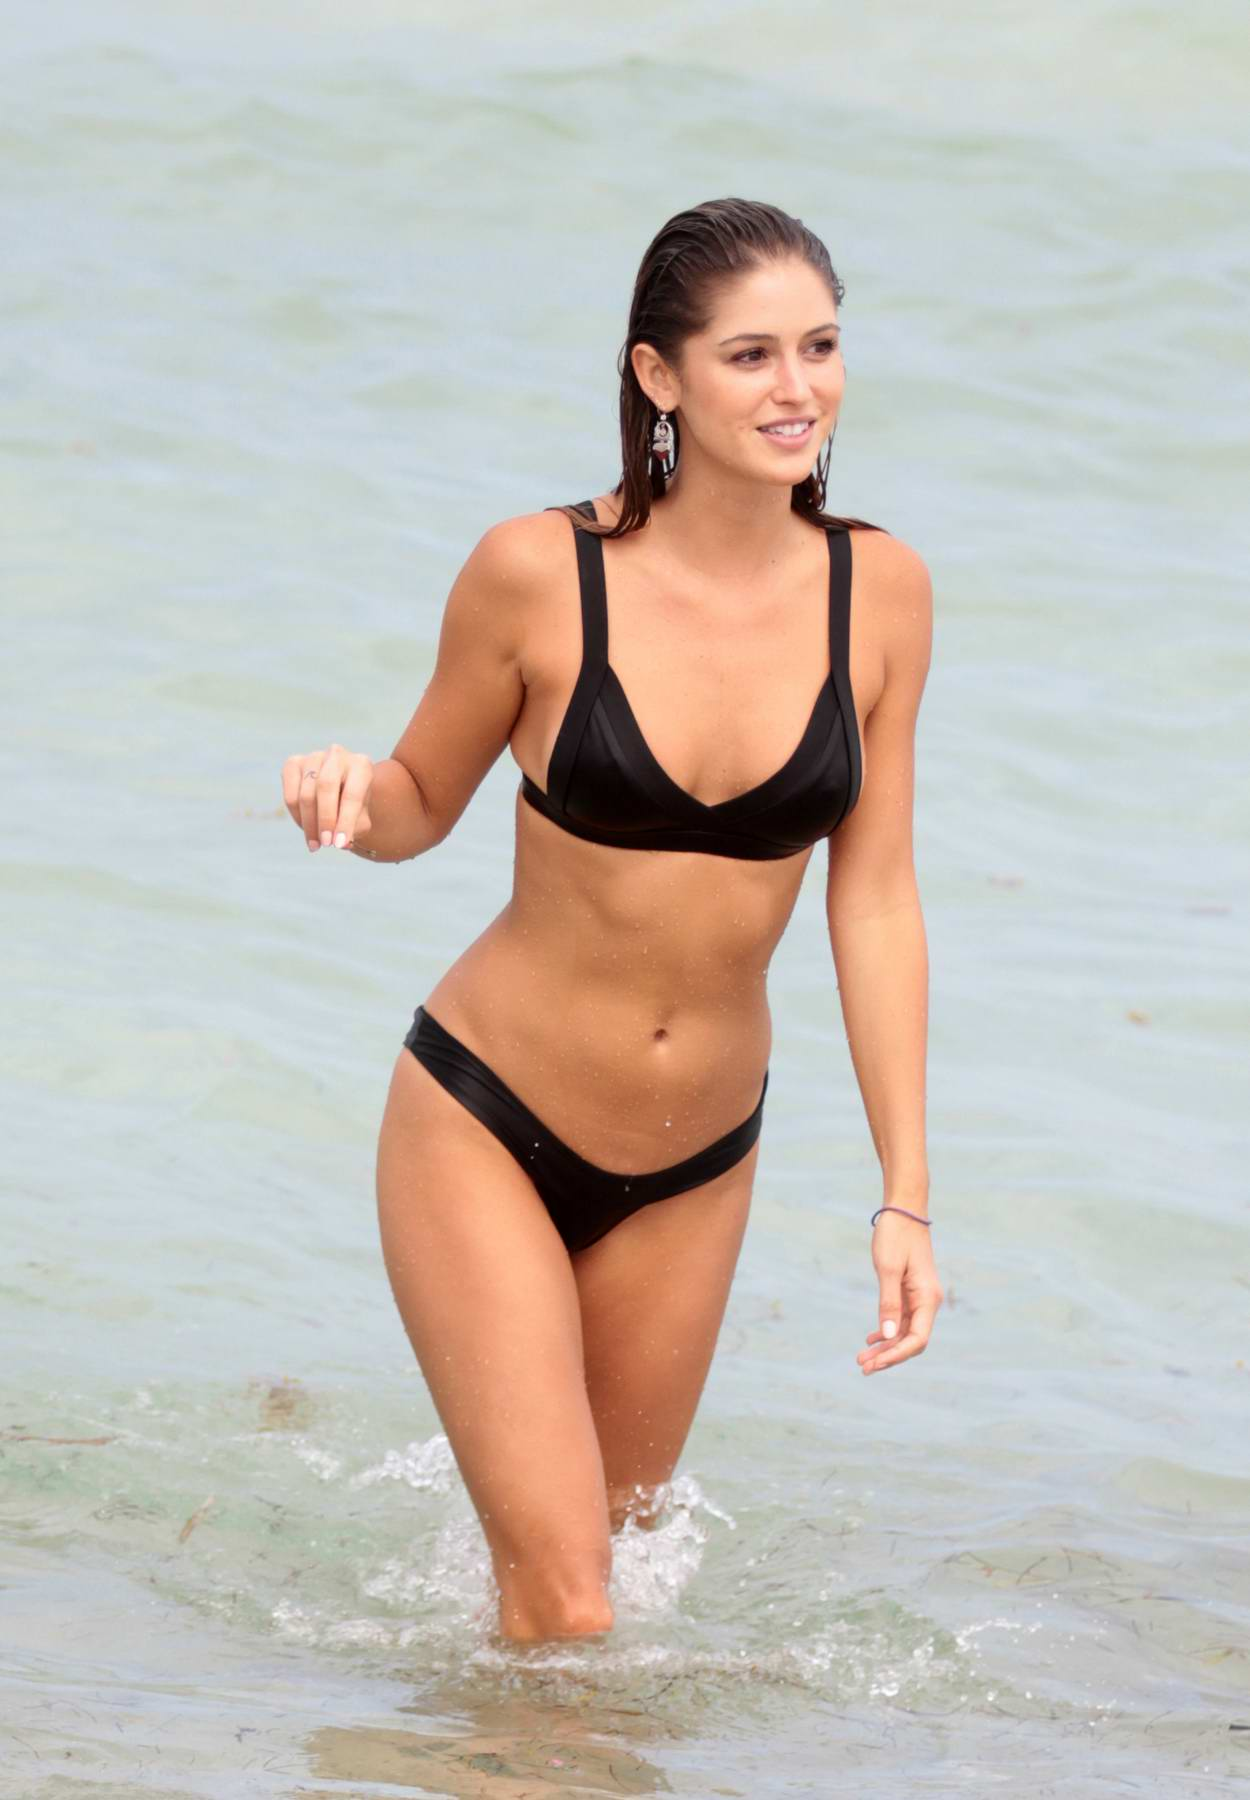 Gigi Paris in a Black Bikini enjoys the Beach in Miami